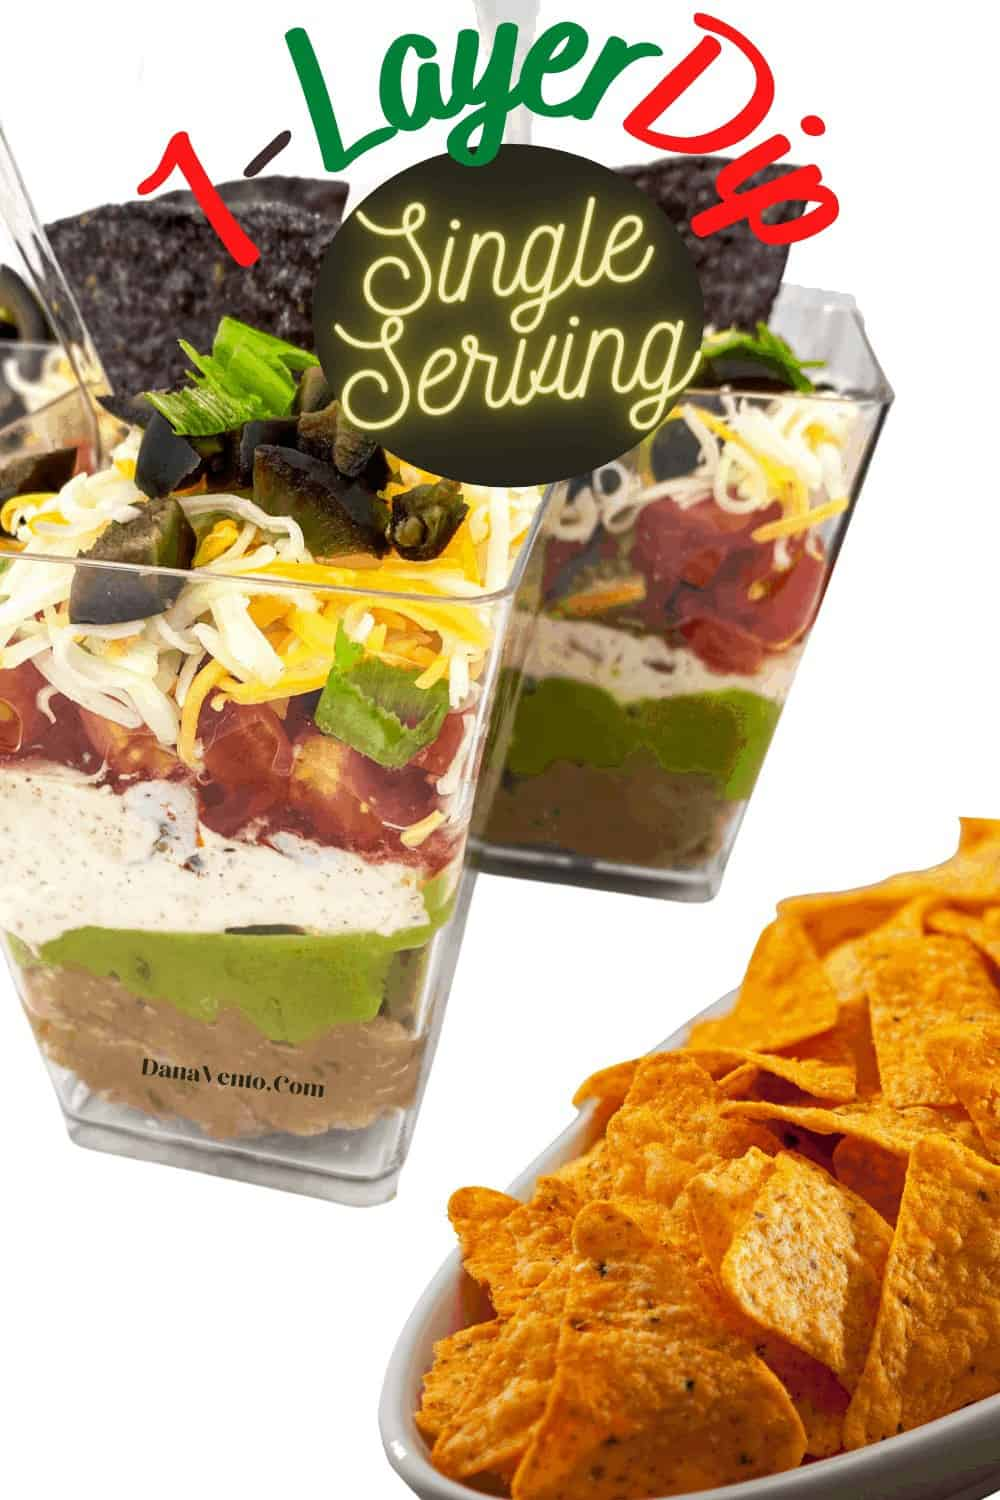 Party Perfect Single Serving 7 Layer Dip Cups - Footbal food ideas